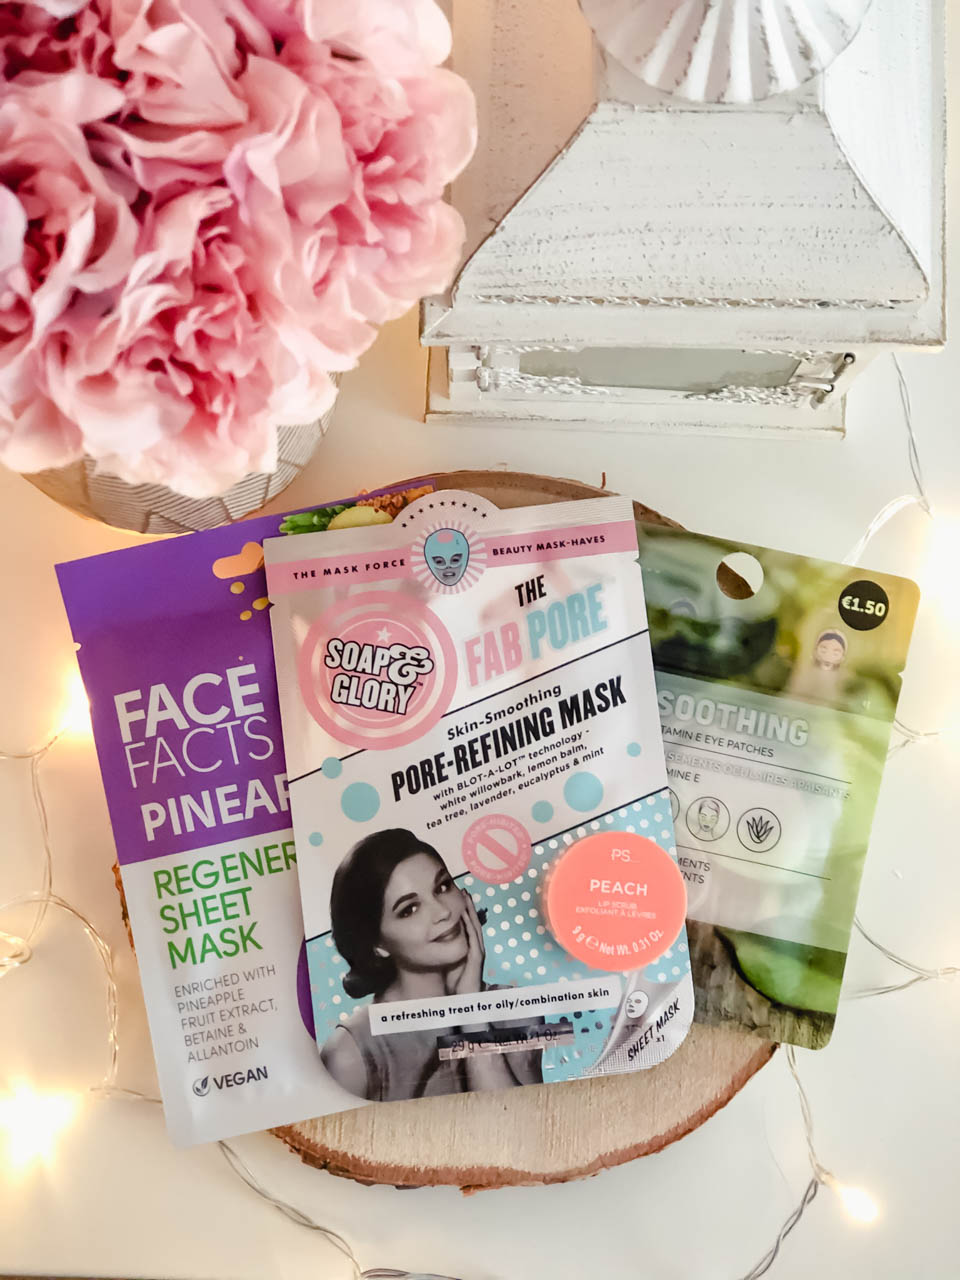 Three face masks from Soap and Glory, Face Facts and Primark on a desk next to a vase of peonies and a wooden lantern